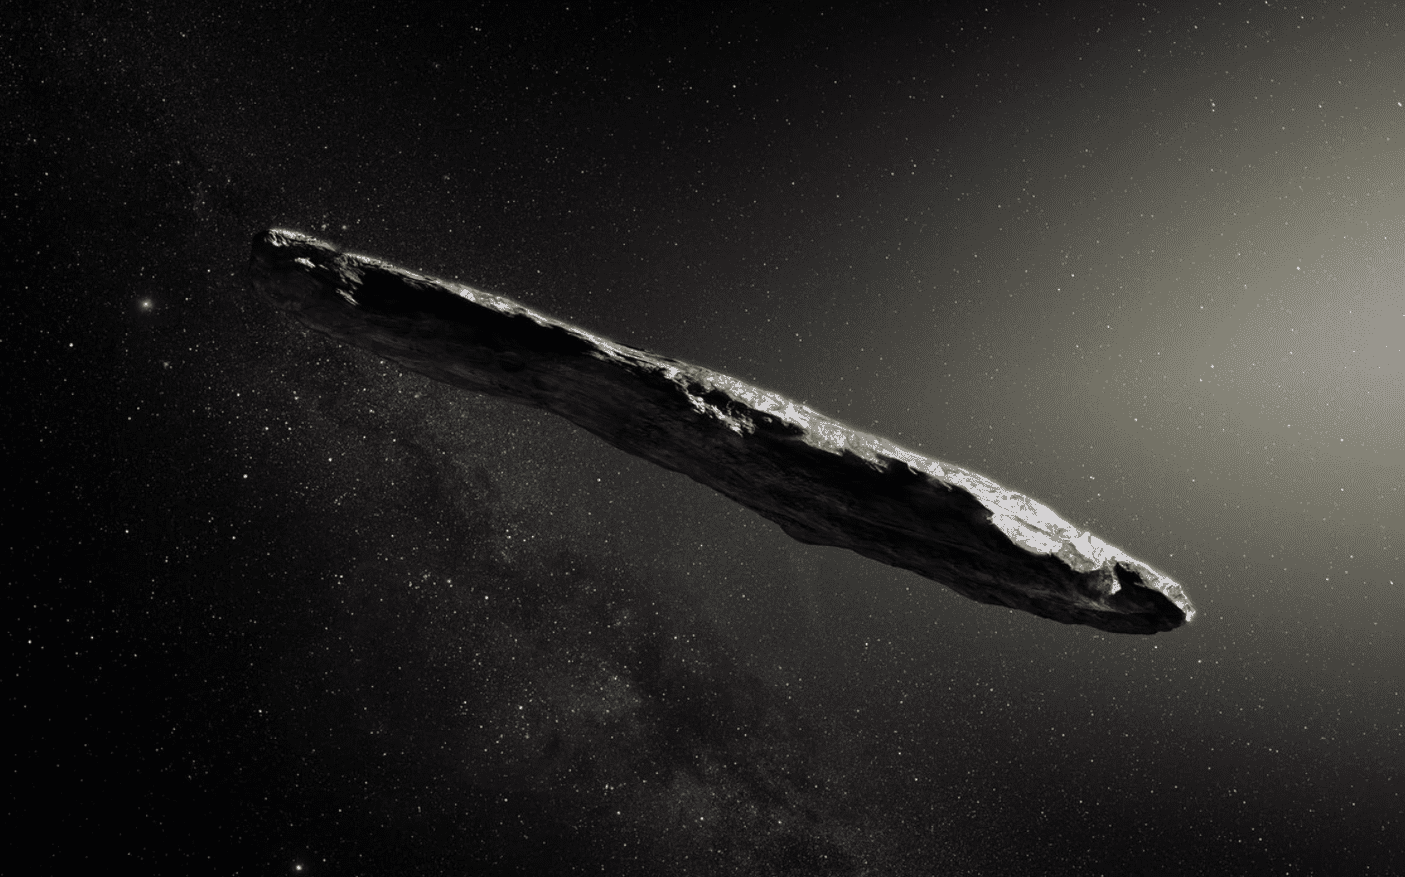 ESO: First Observed Interstellar Asteroid Is Incredibly Long, Has Red Color